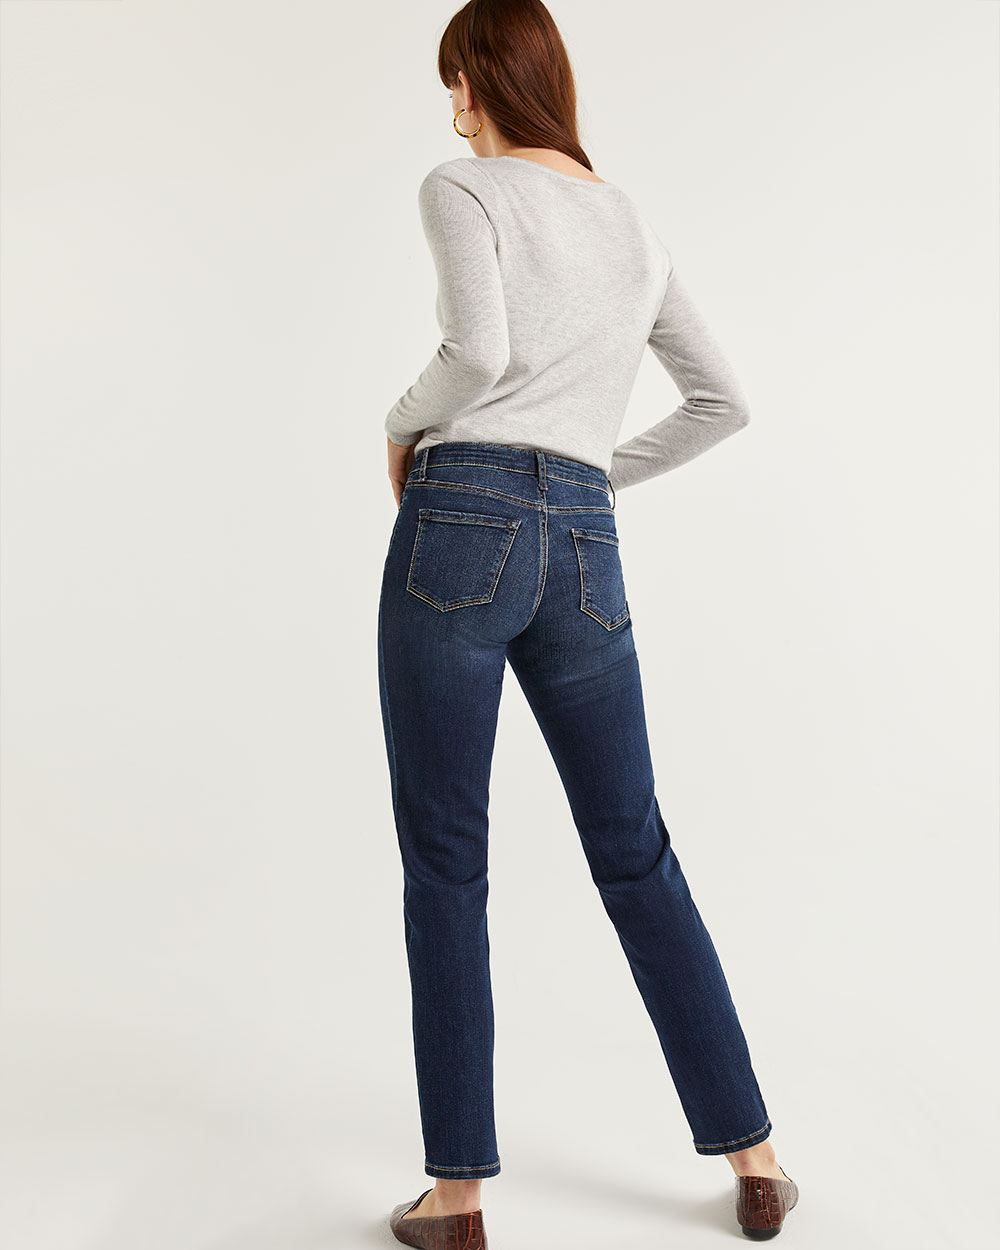 The Insider Straight Jeans - Tall